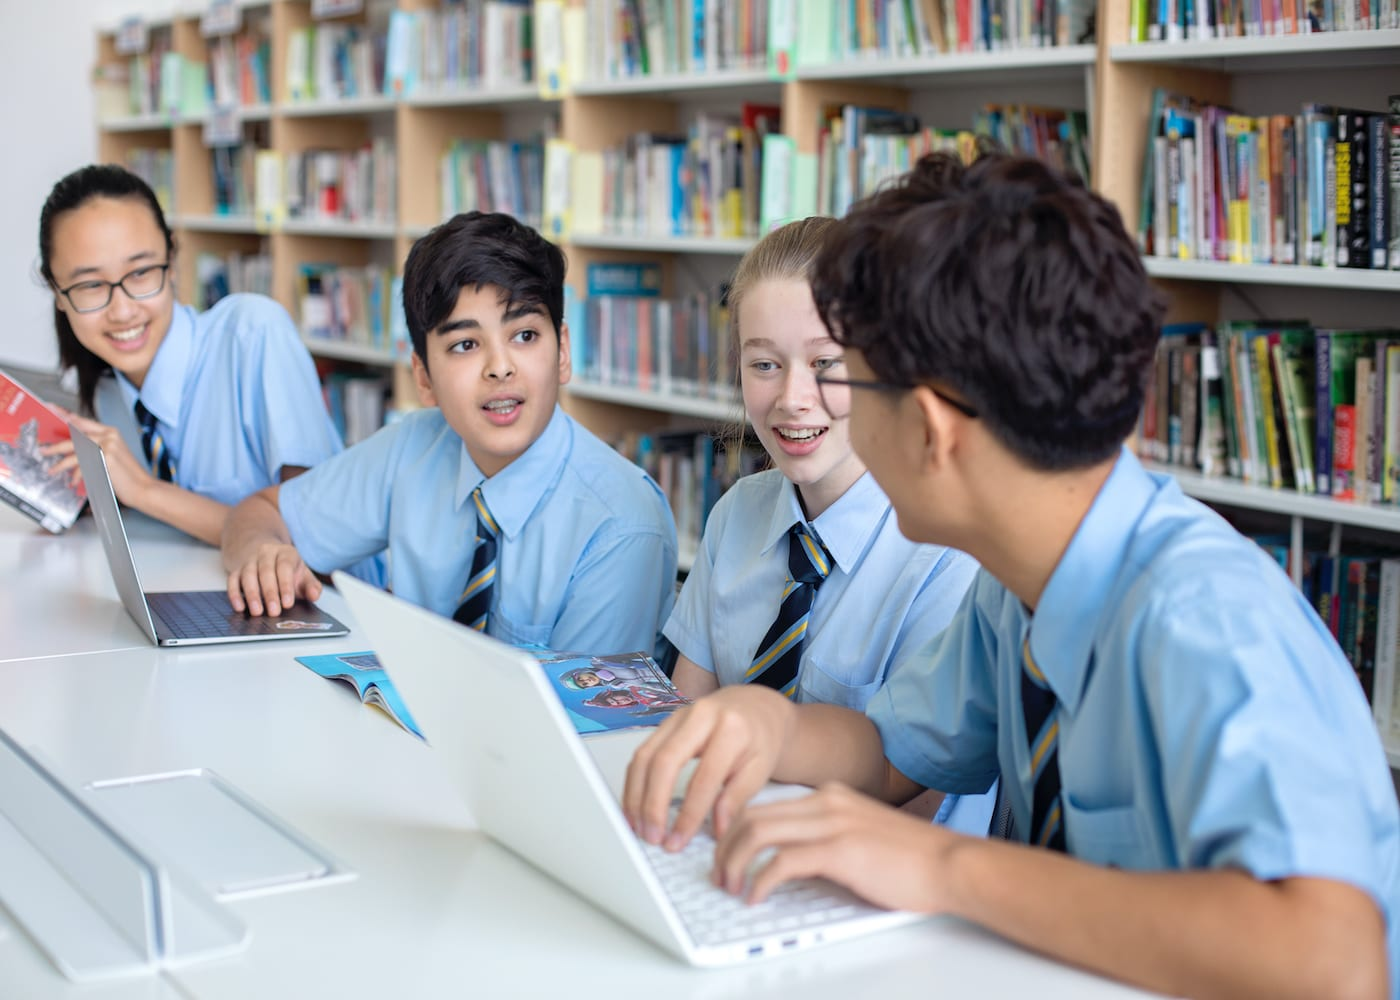 Get the full lowdown on the storied North London Collegiate School (Singapore), its heritage and ambitious academic programme